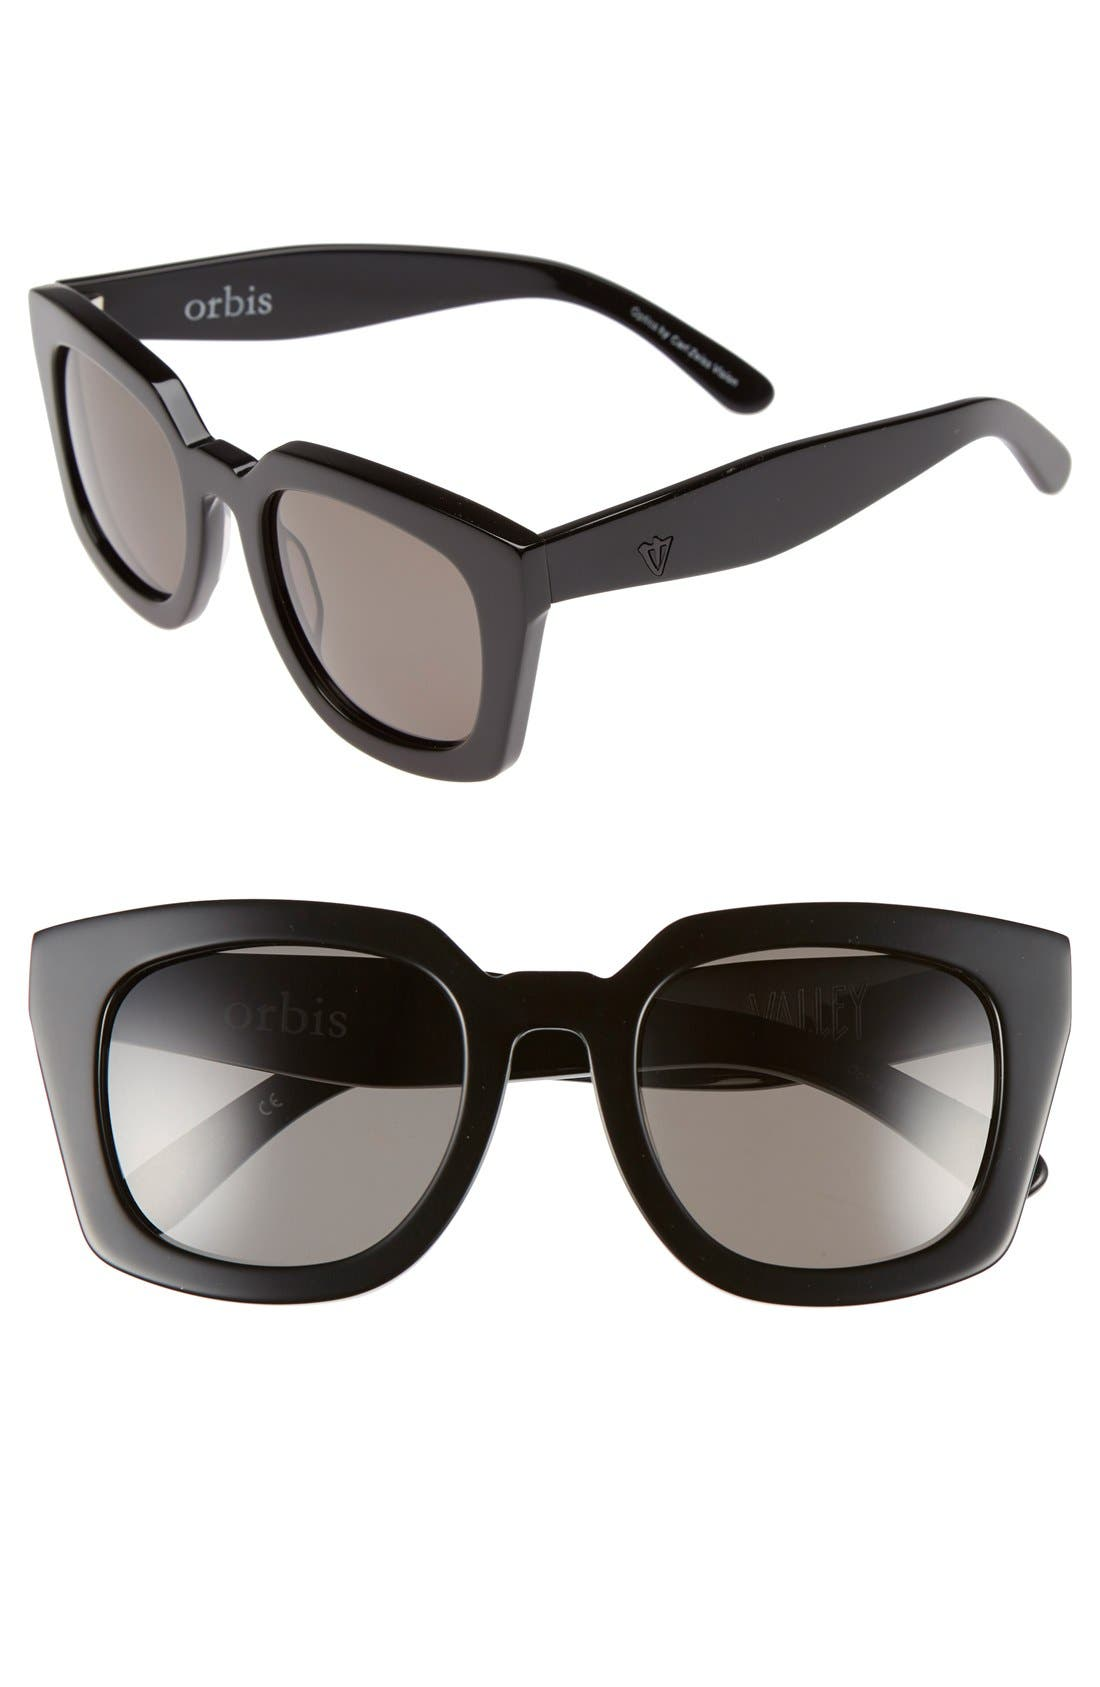 VALLEY 'Orbis' 50mm Oversized Sunglasses